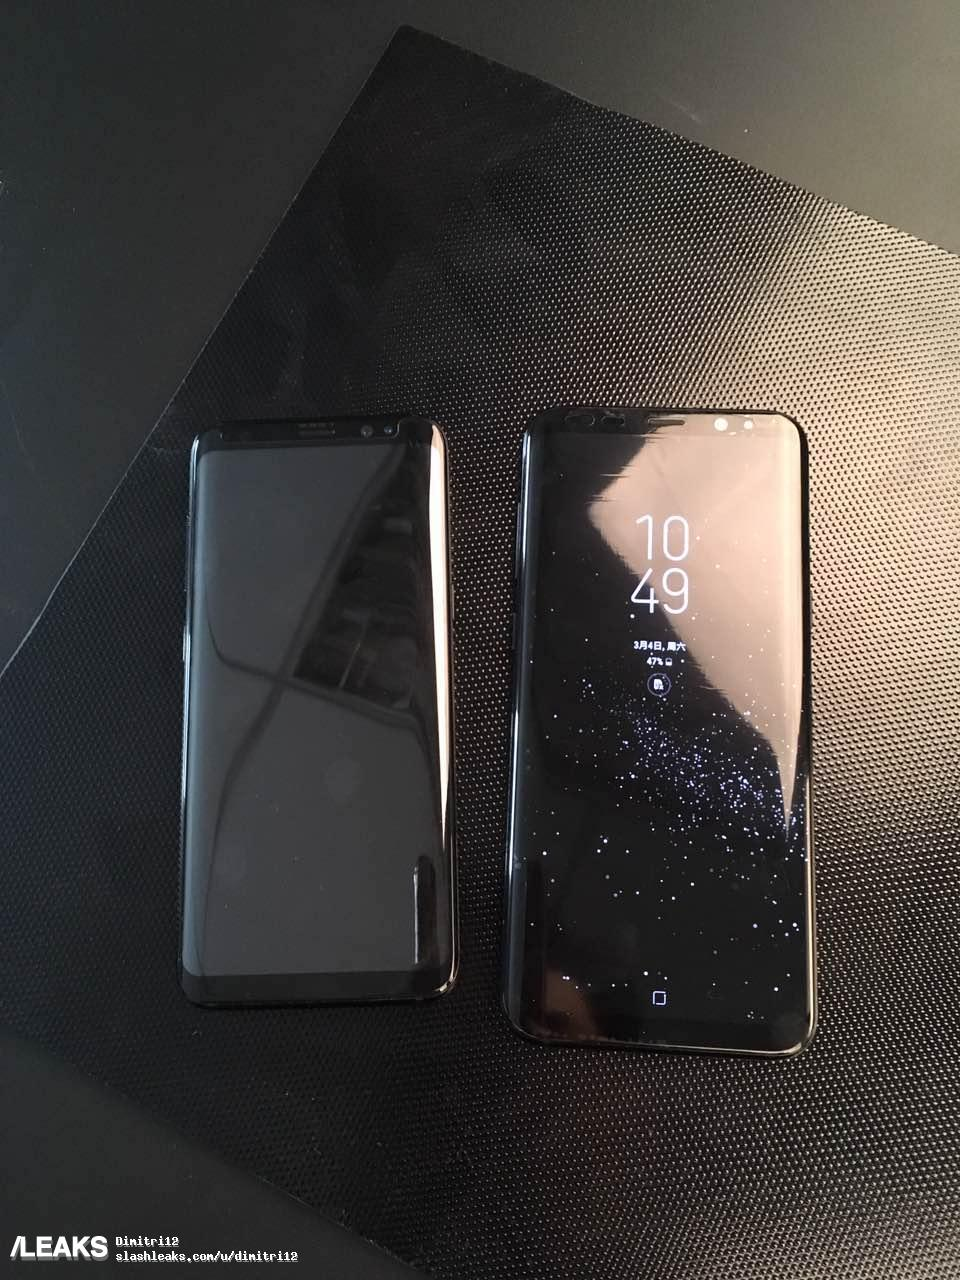 Alleged-Galaxy-S8-shots-from-a-screen-protector-maker